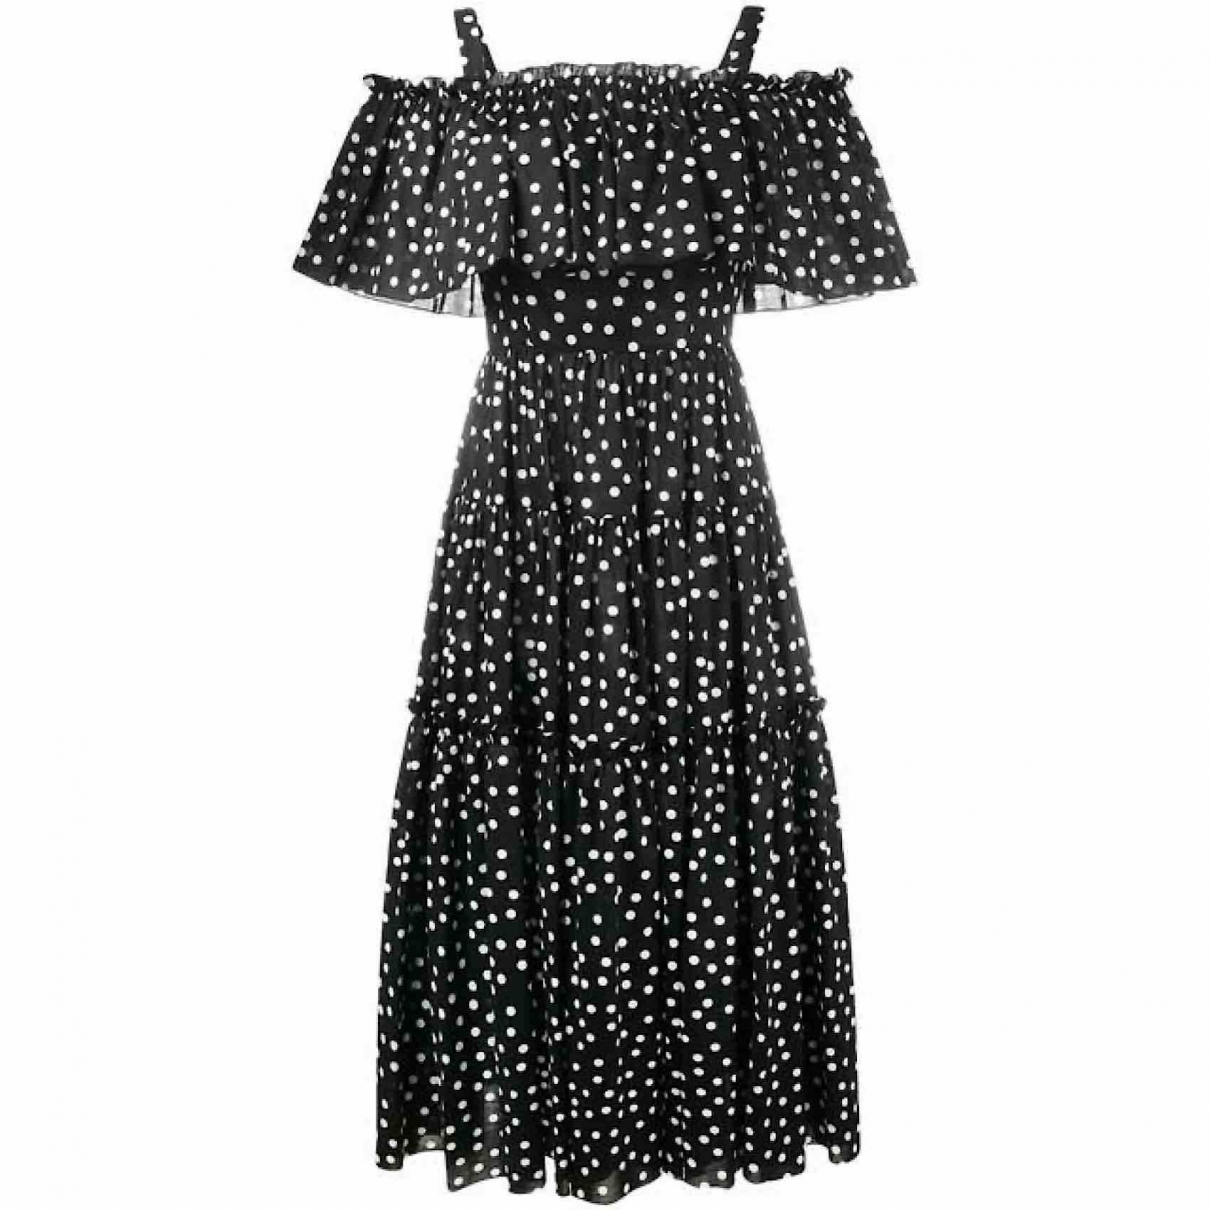 Dolce & Gabbana \N Black Cotton dress for Women 40 IT